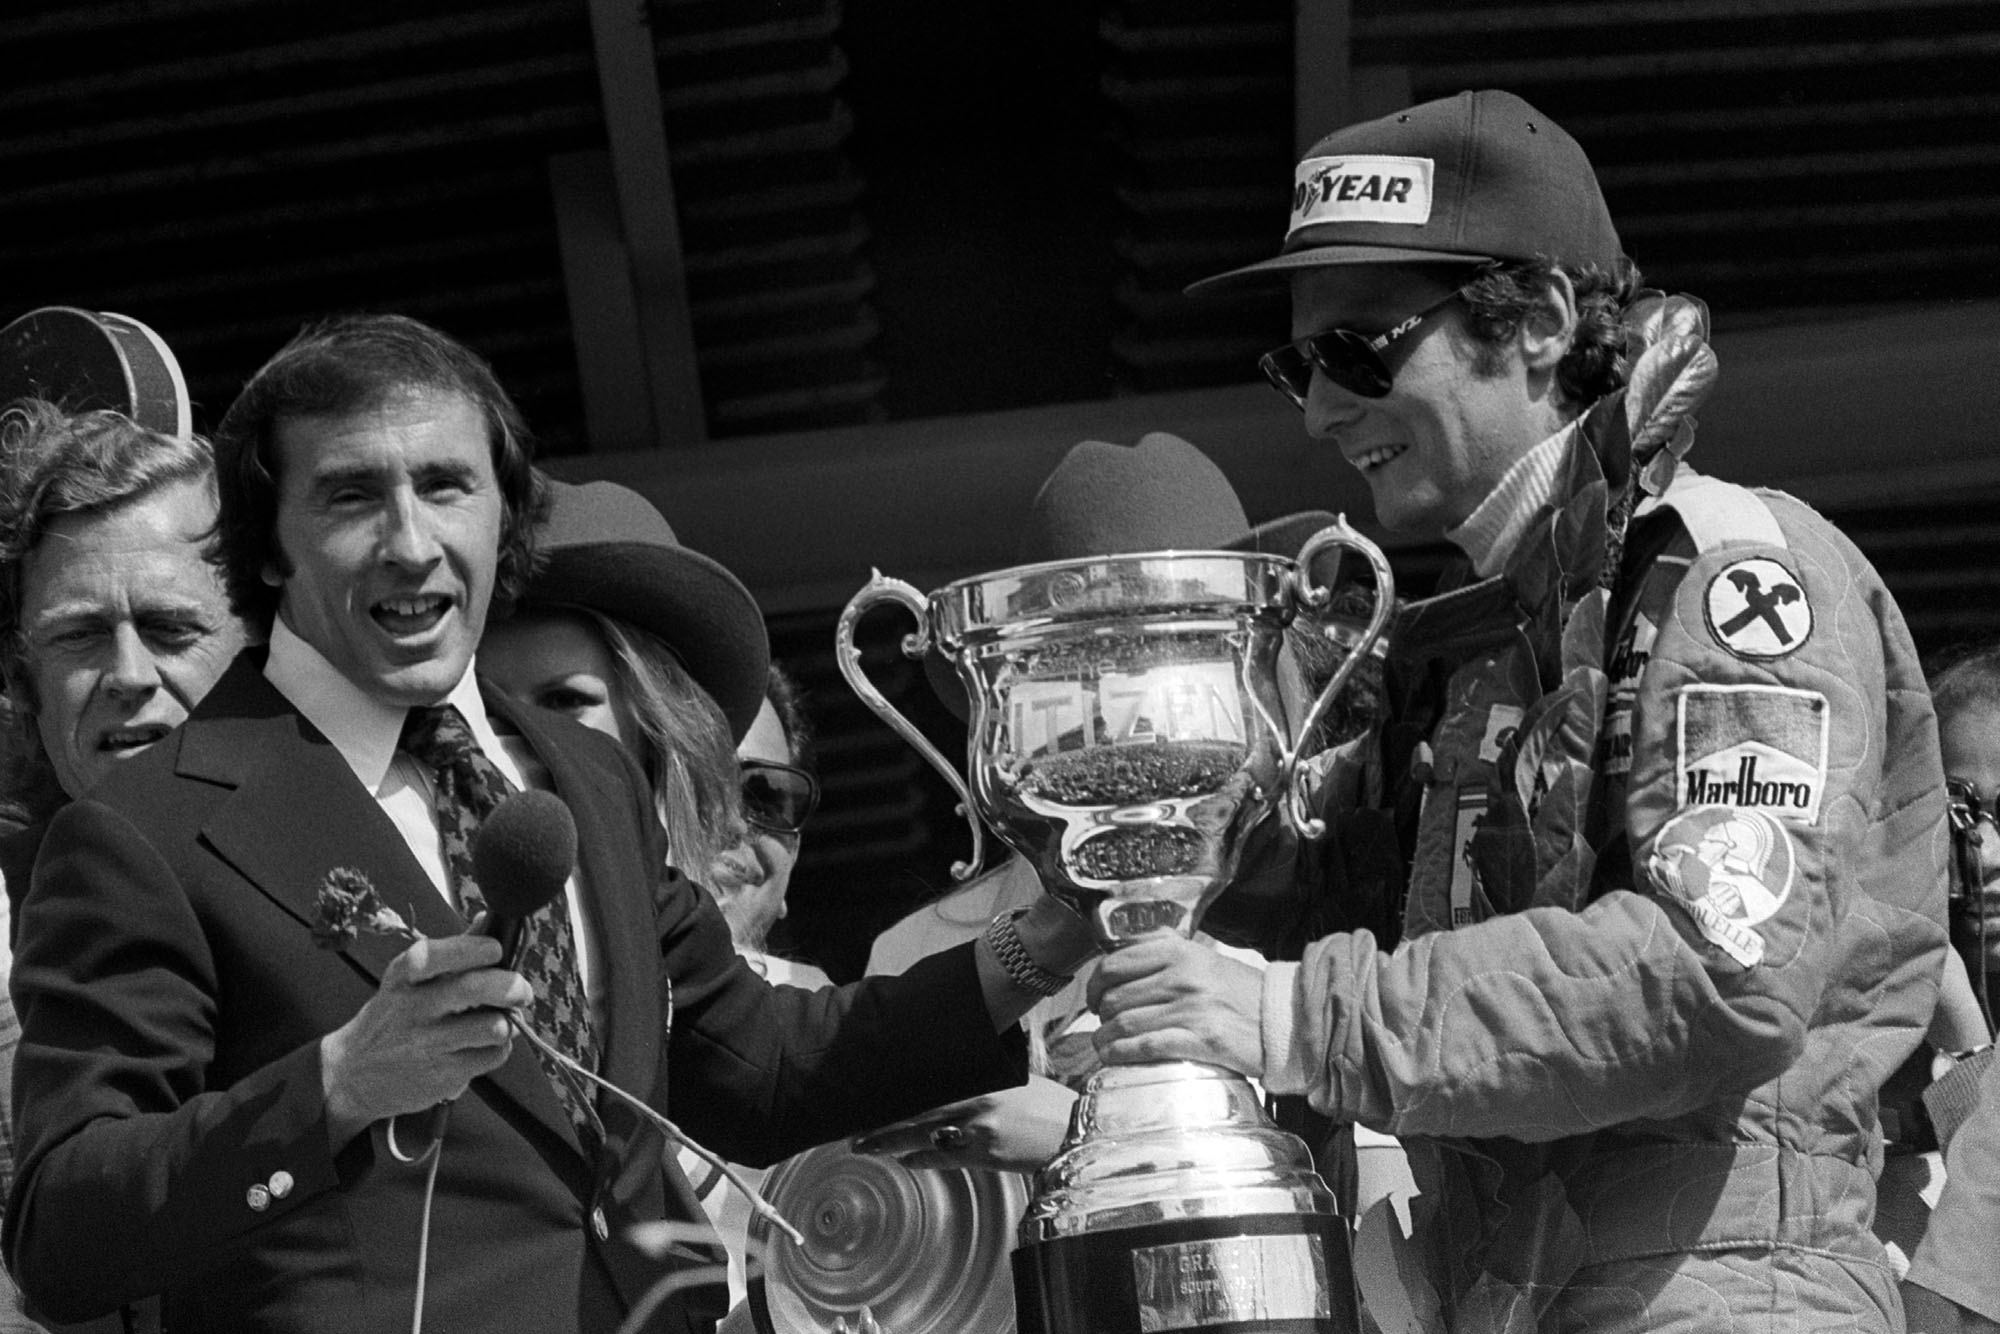 Niki Lauda (Ferrari) is handed the trophy by Jackie Stewart at the 1976 South African Grand Prix.